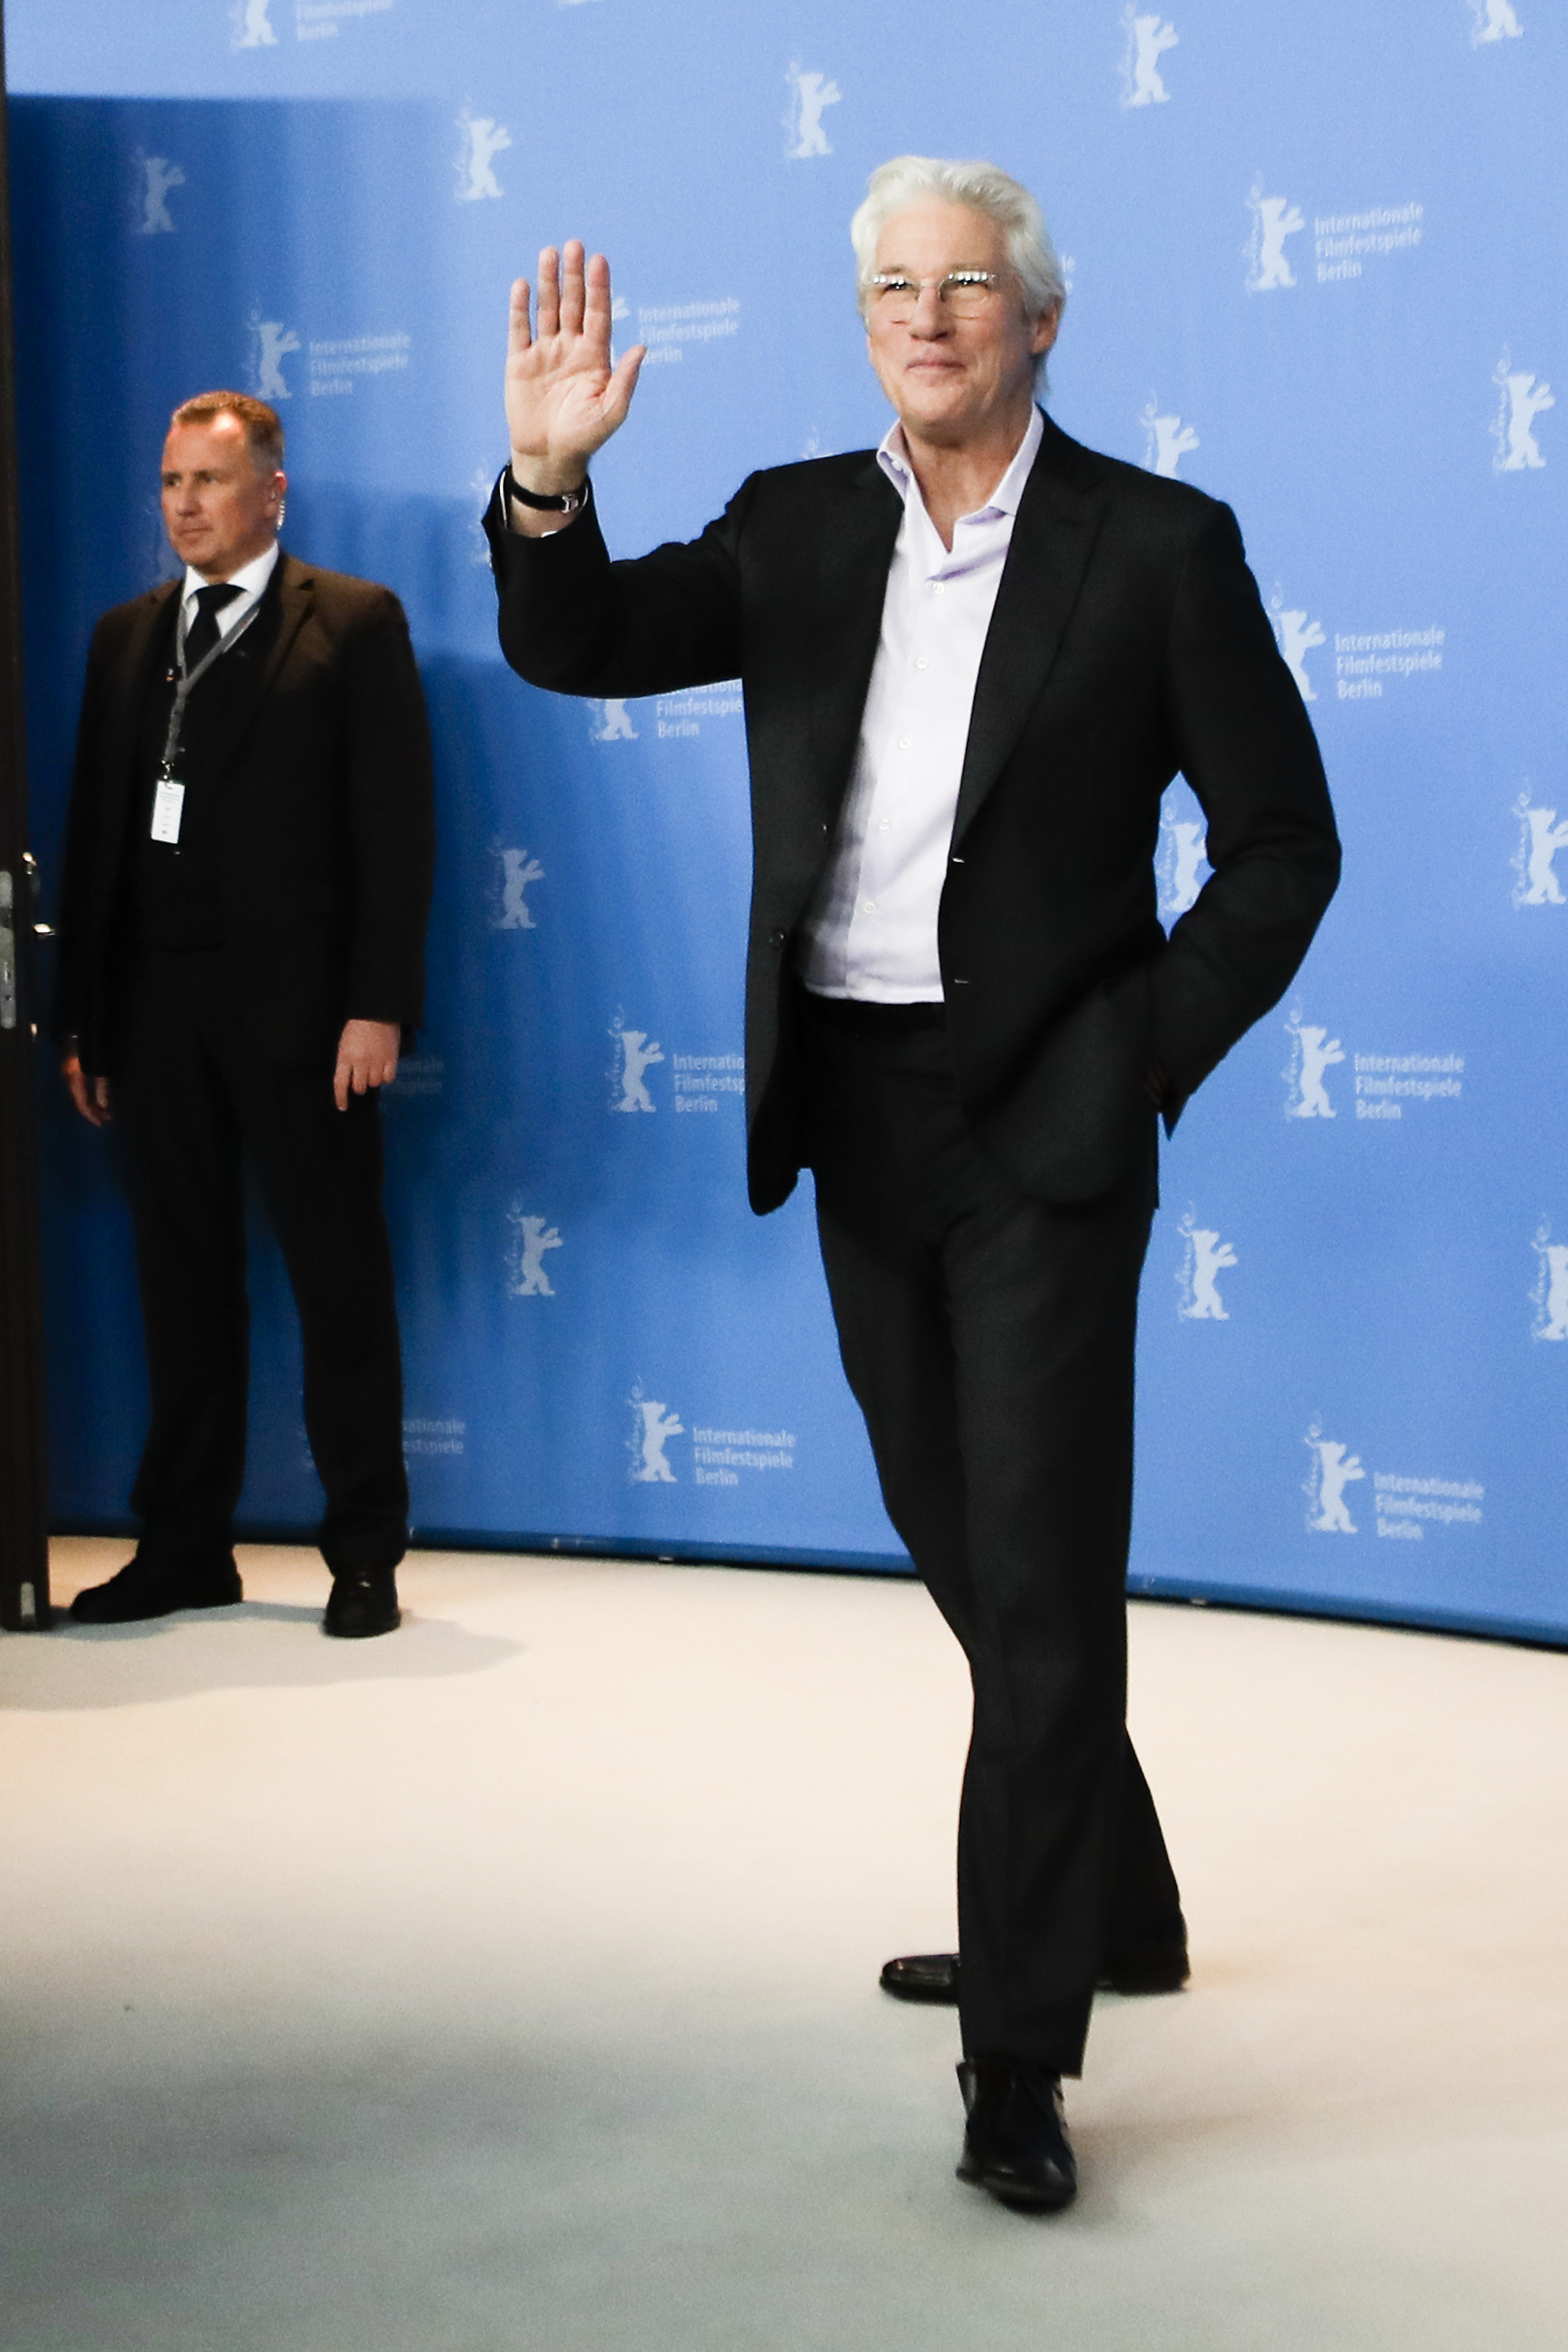 foto : markus schreiber : actor richard gere, right, poses for the photographers during a photo call for the film 'the dinner' at the 2017 berlinale film festival in berlin, germany, friday, feb. 10, 2017. (ap photo/markus schreiber) germany berlin film festival 201